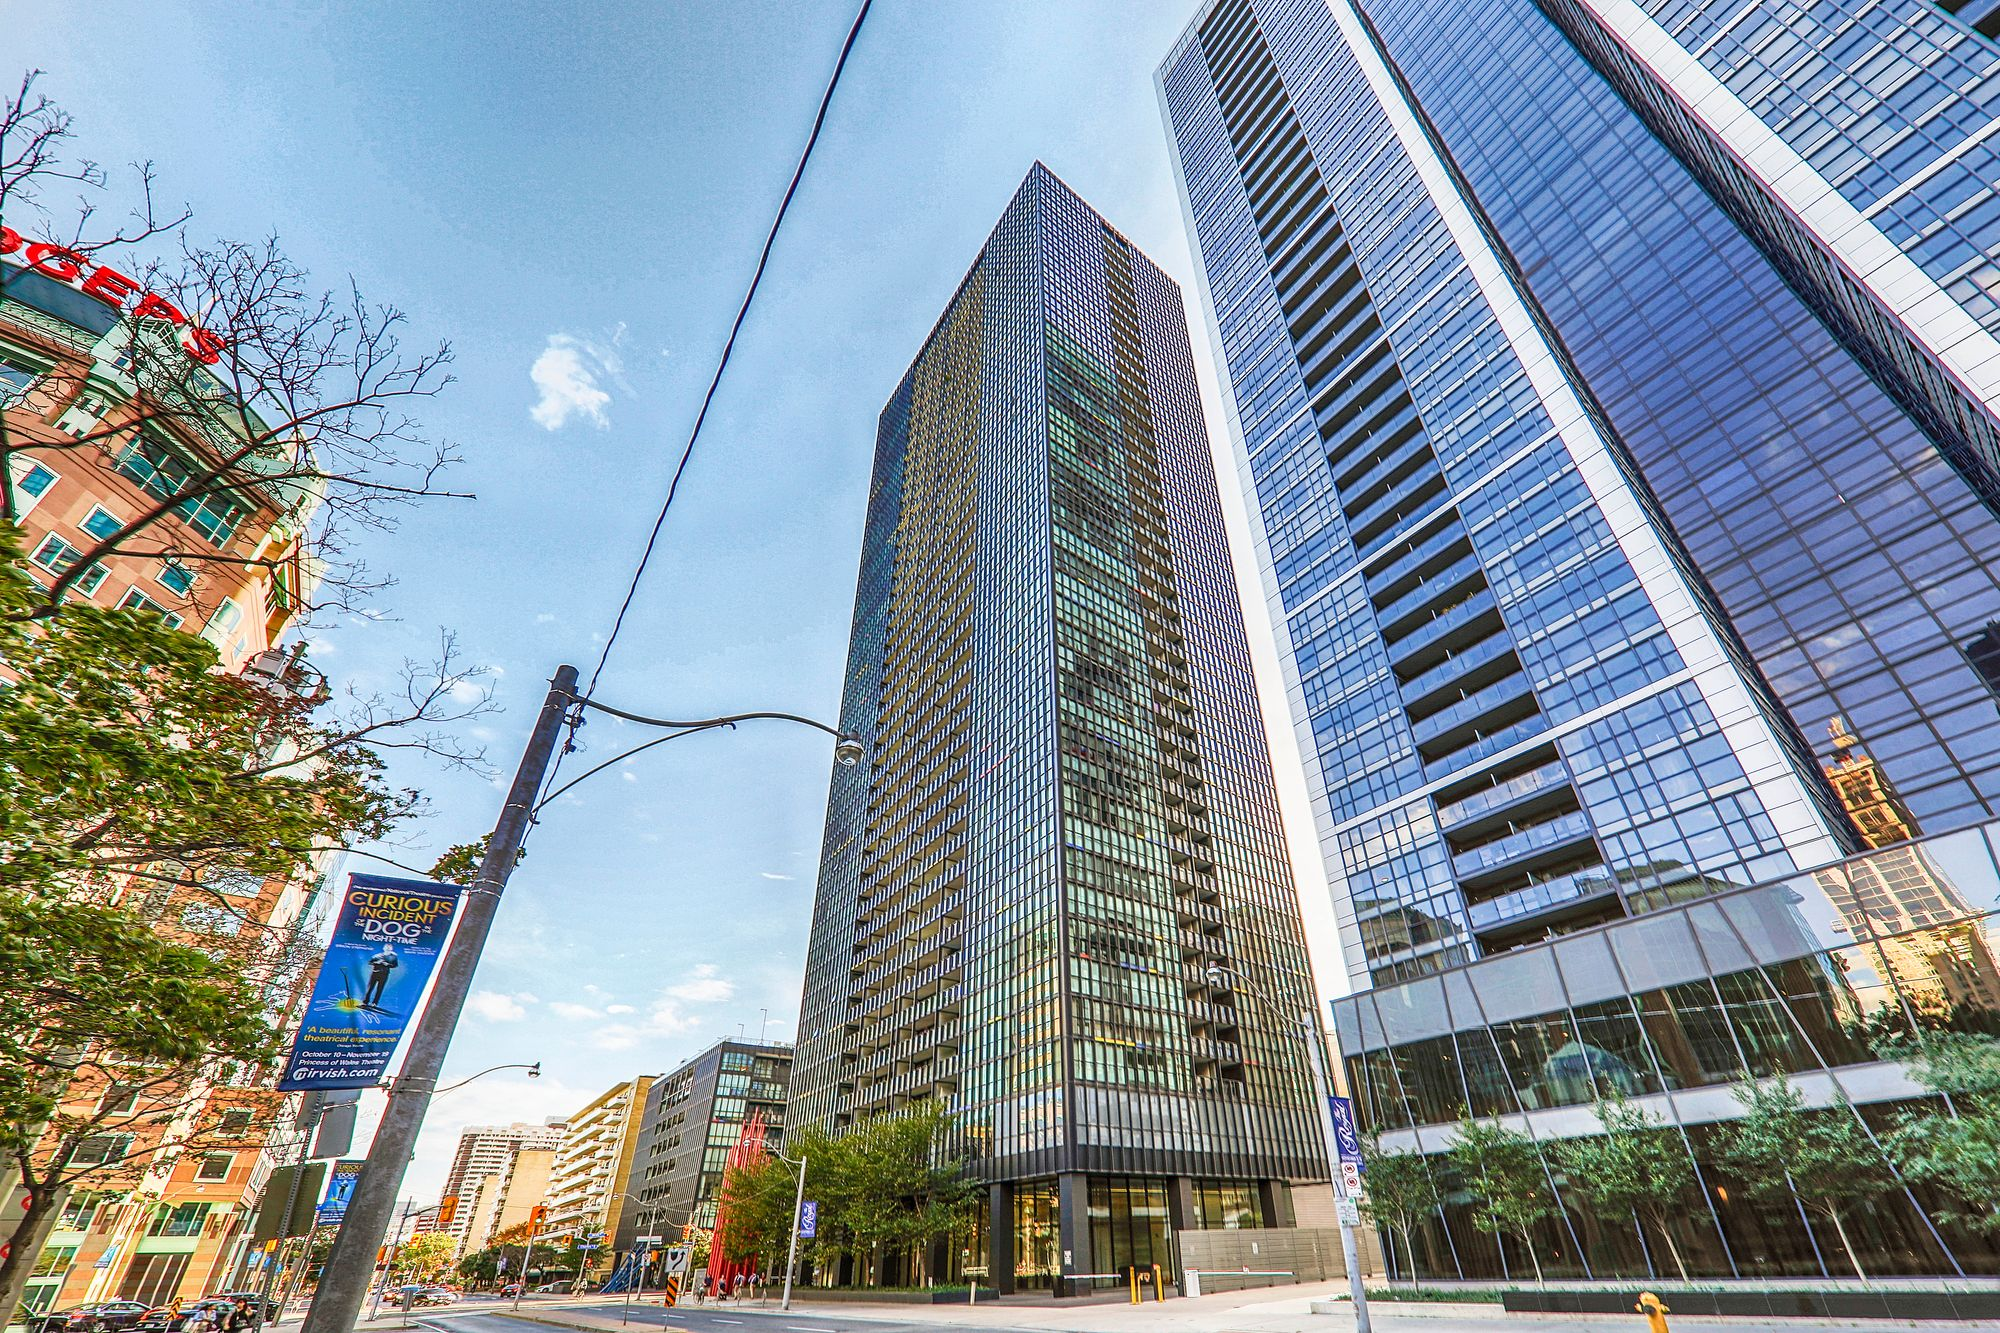 X2 Condos At 101 Charles St E 4 Condos For Sale 8 Units For Rent